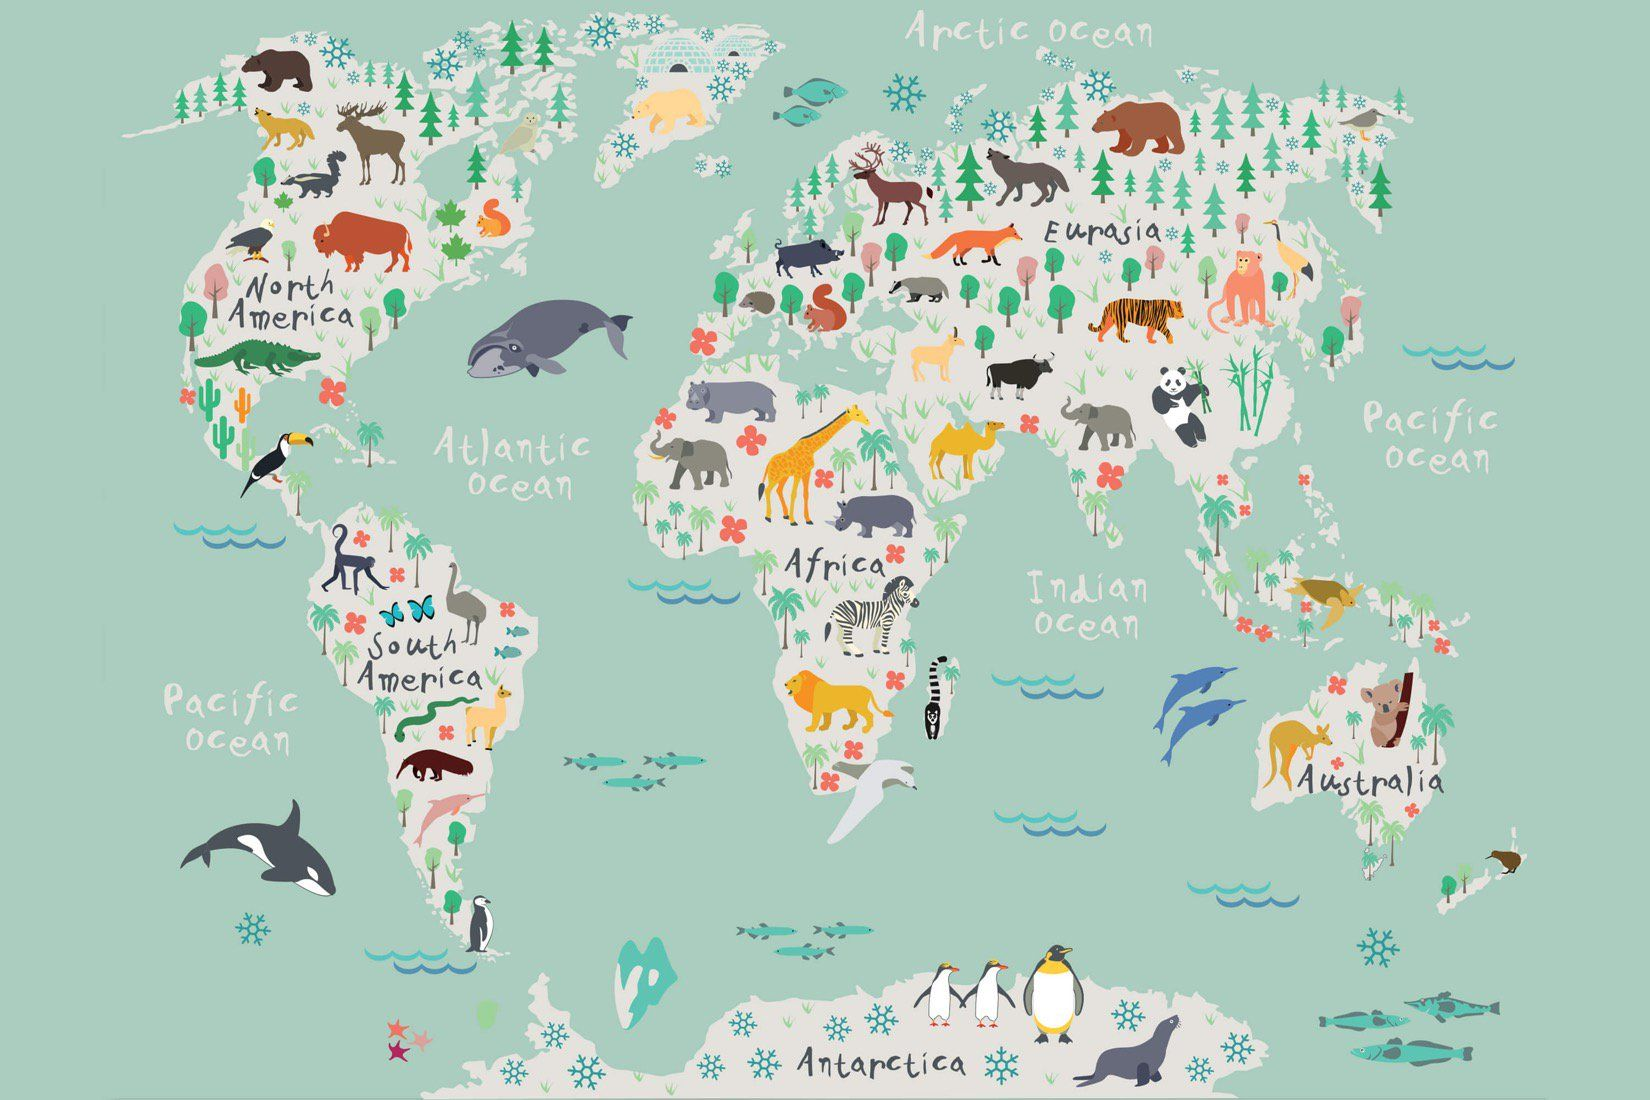 Safari kids map mural wallpaper muralswallpaper colores safari kids map mural wallpaper custom made to suit your wall size by the uks no1 for murals custom design service and express delivery available gumiabroncs Image collections